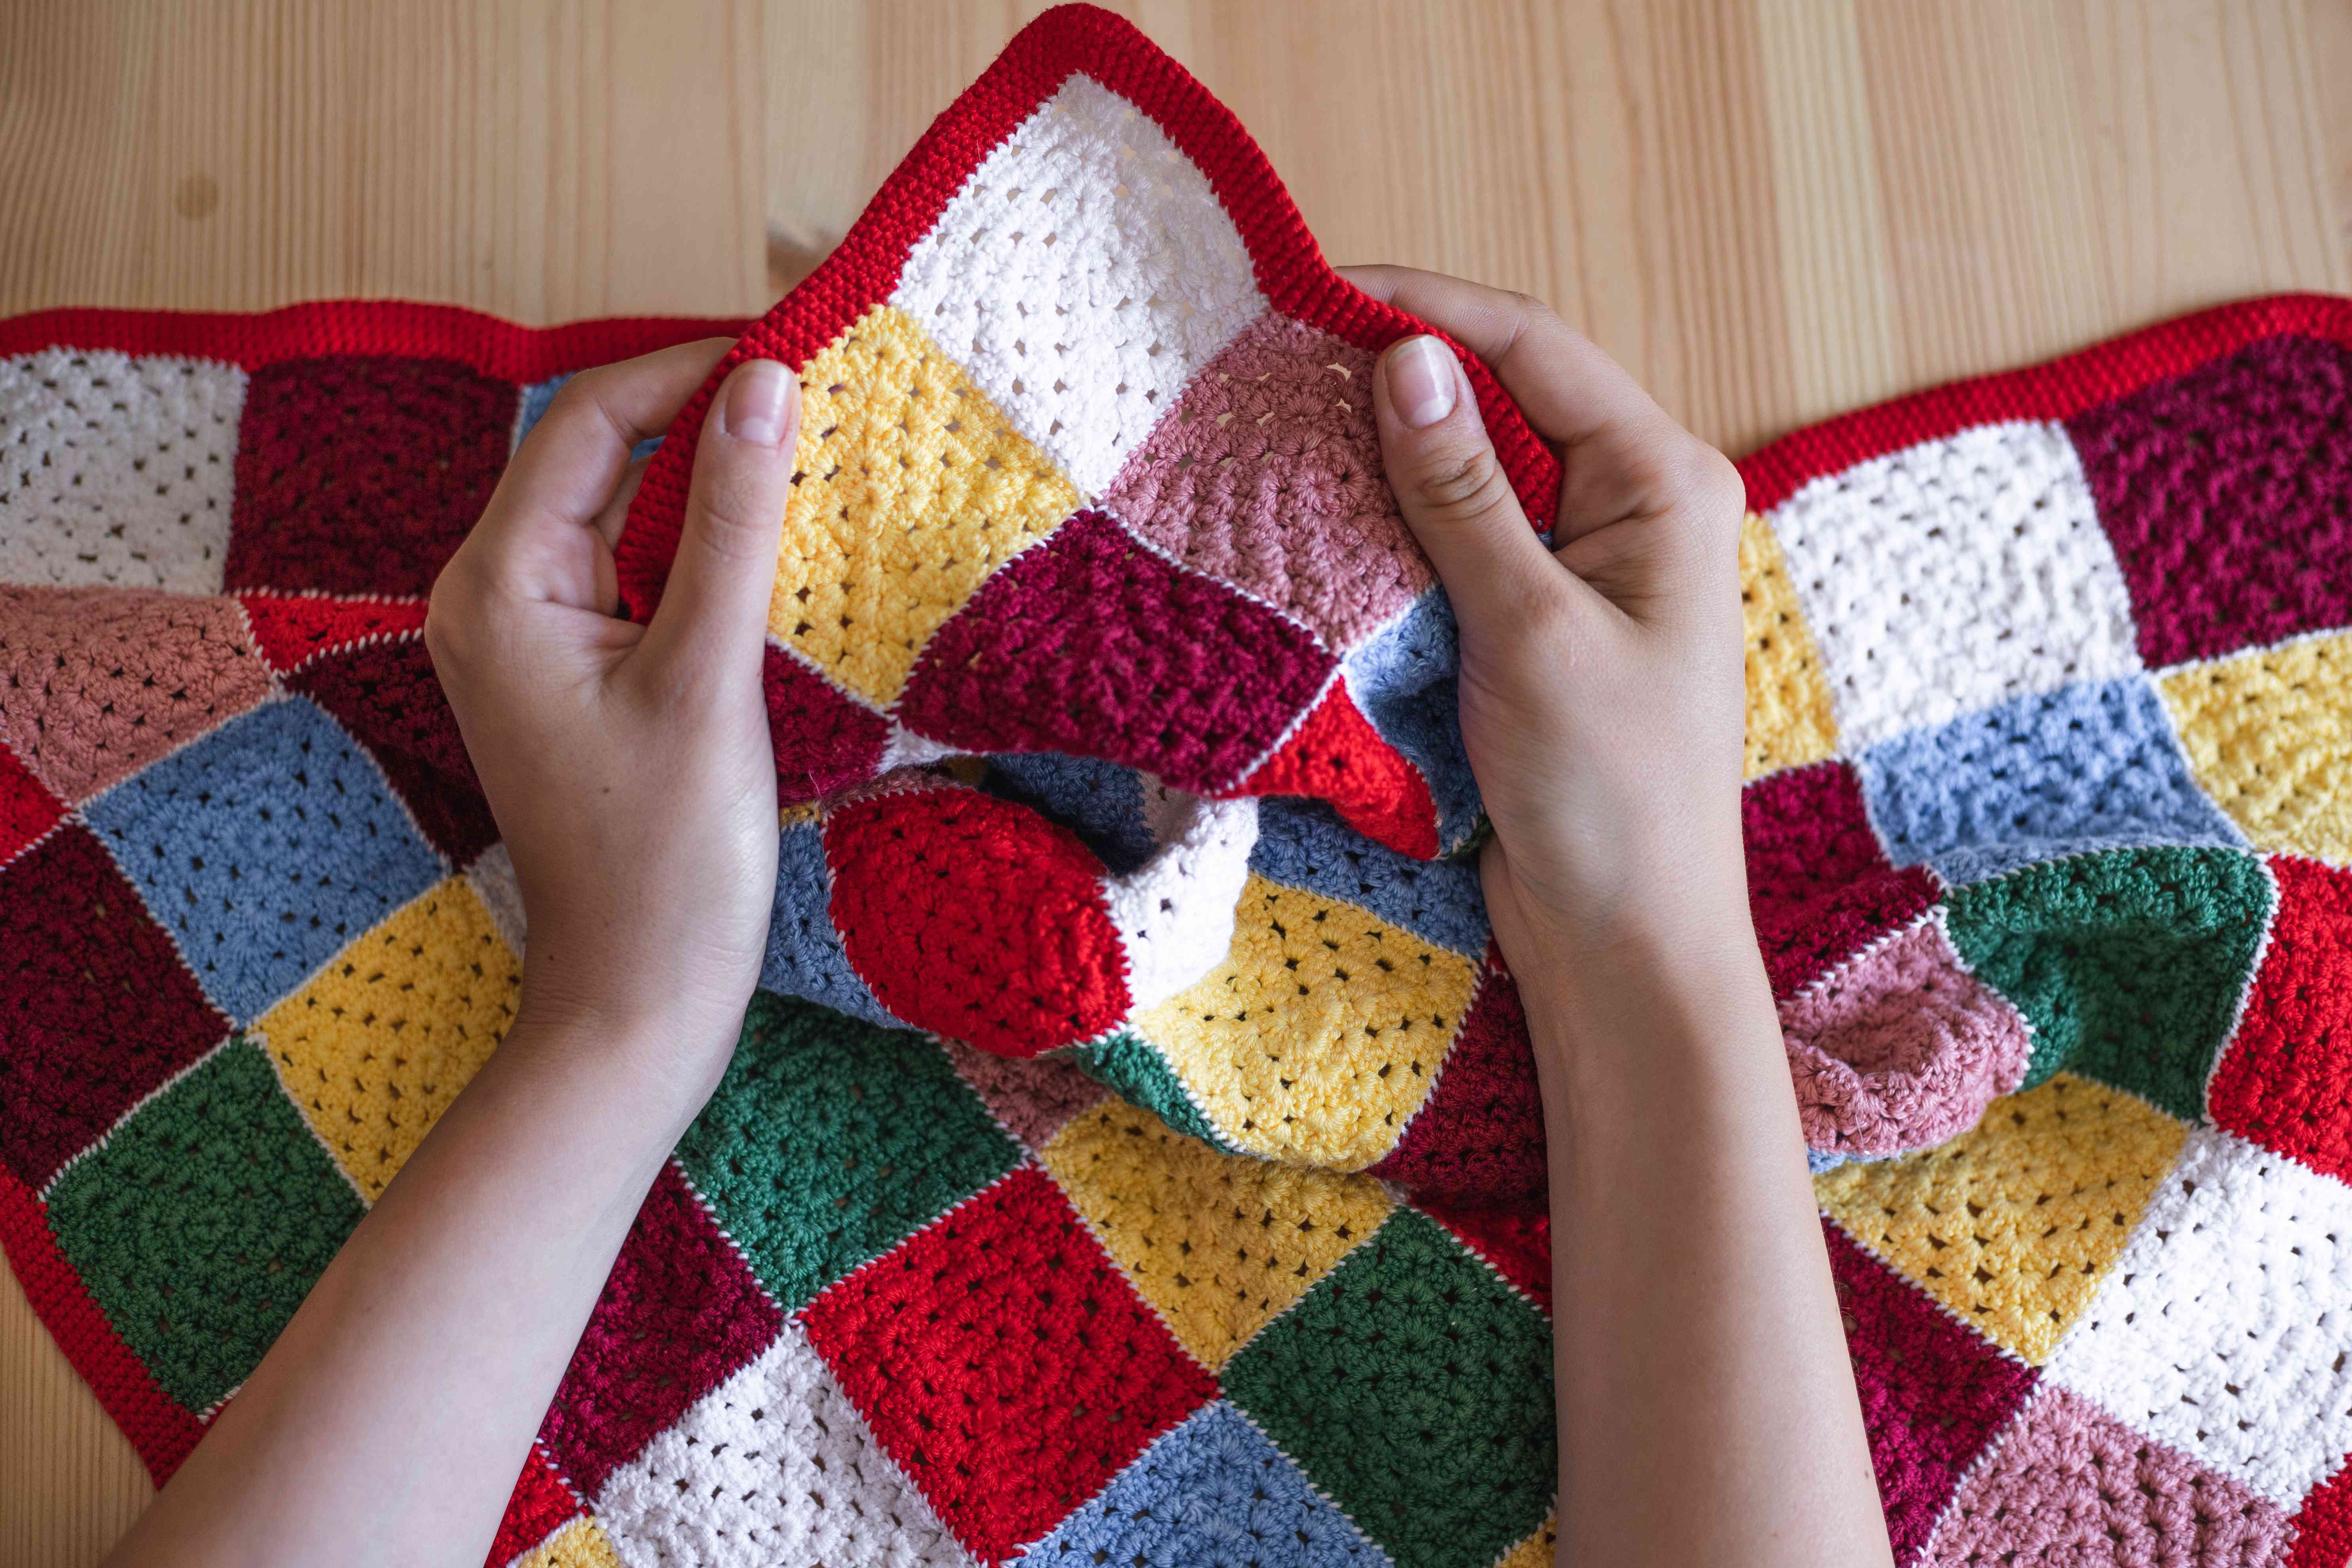 hands hold up a crocheted handmade blanket with multicolor squares